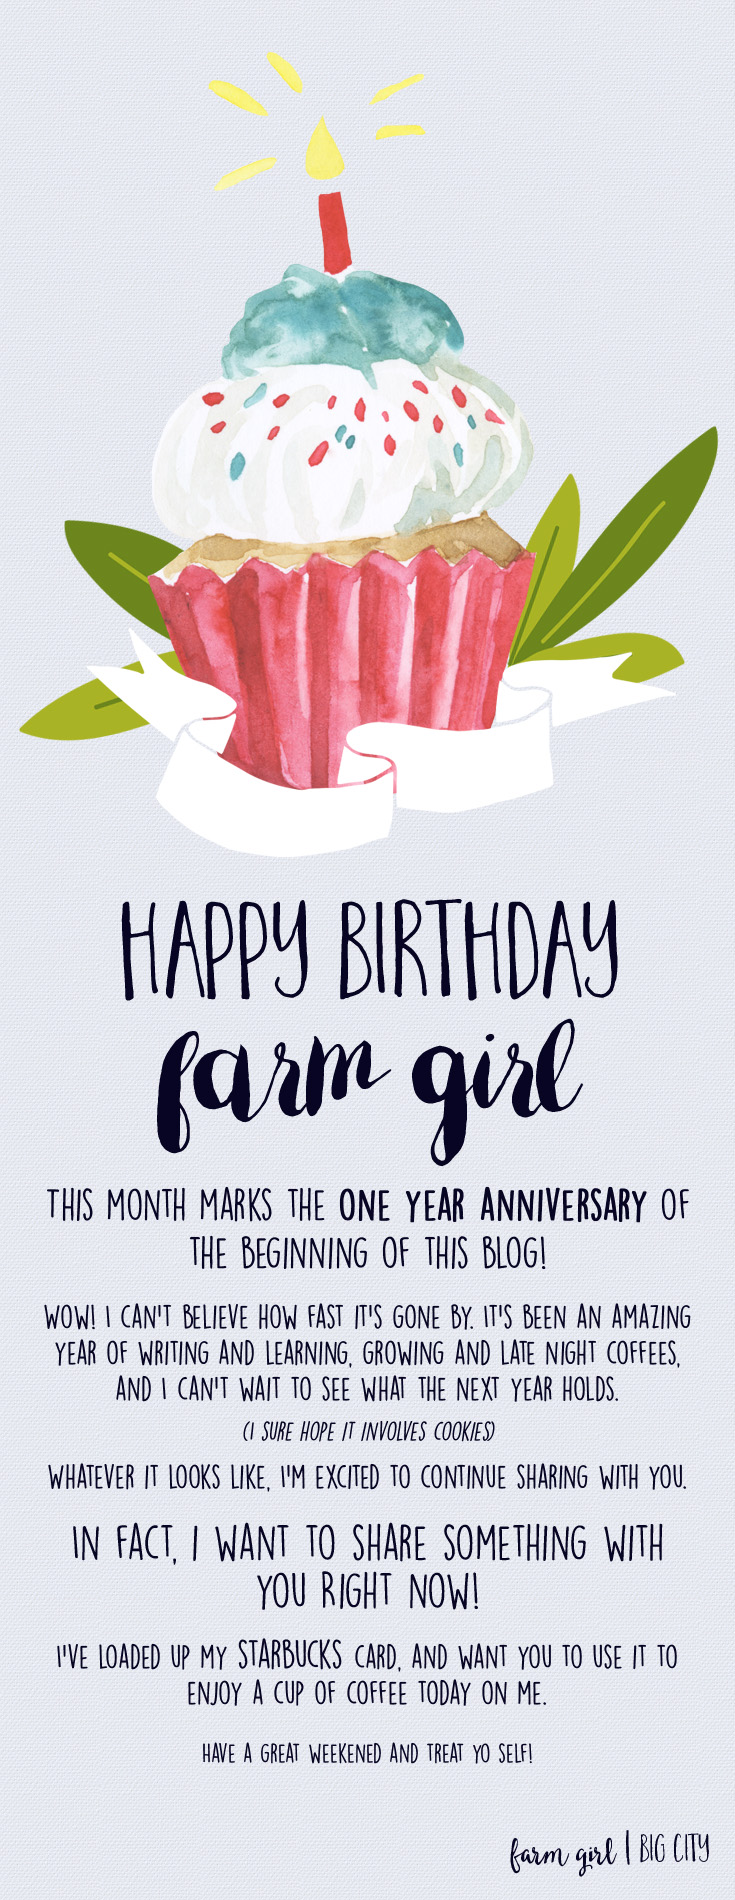 Get a FREE Starbucks coffee on me farm girl – Starbucks Card Birthday Month